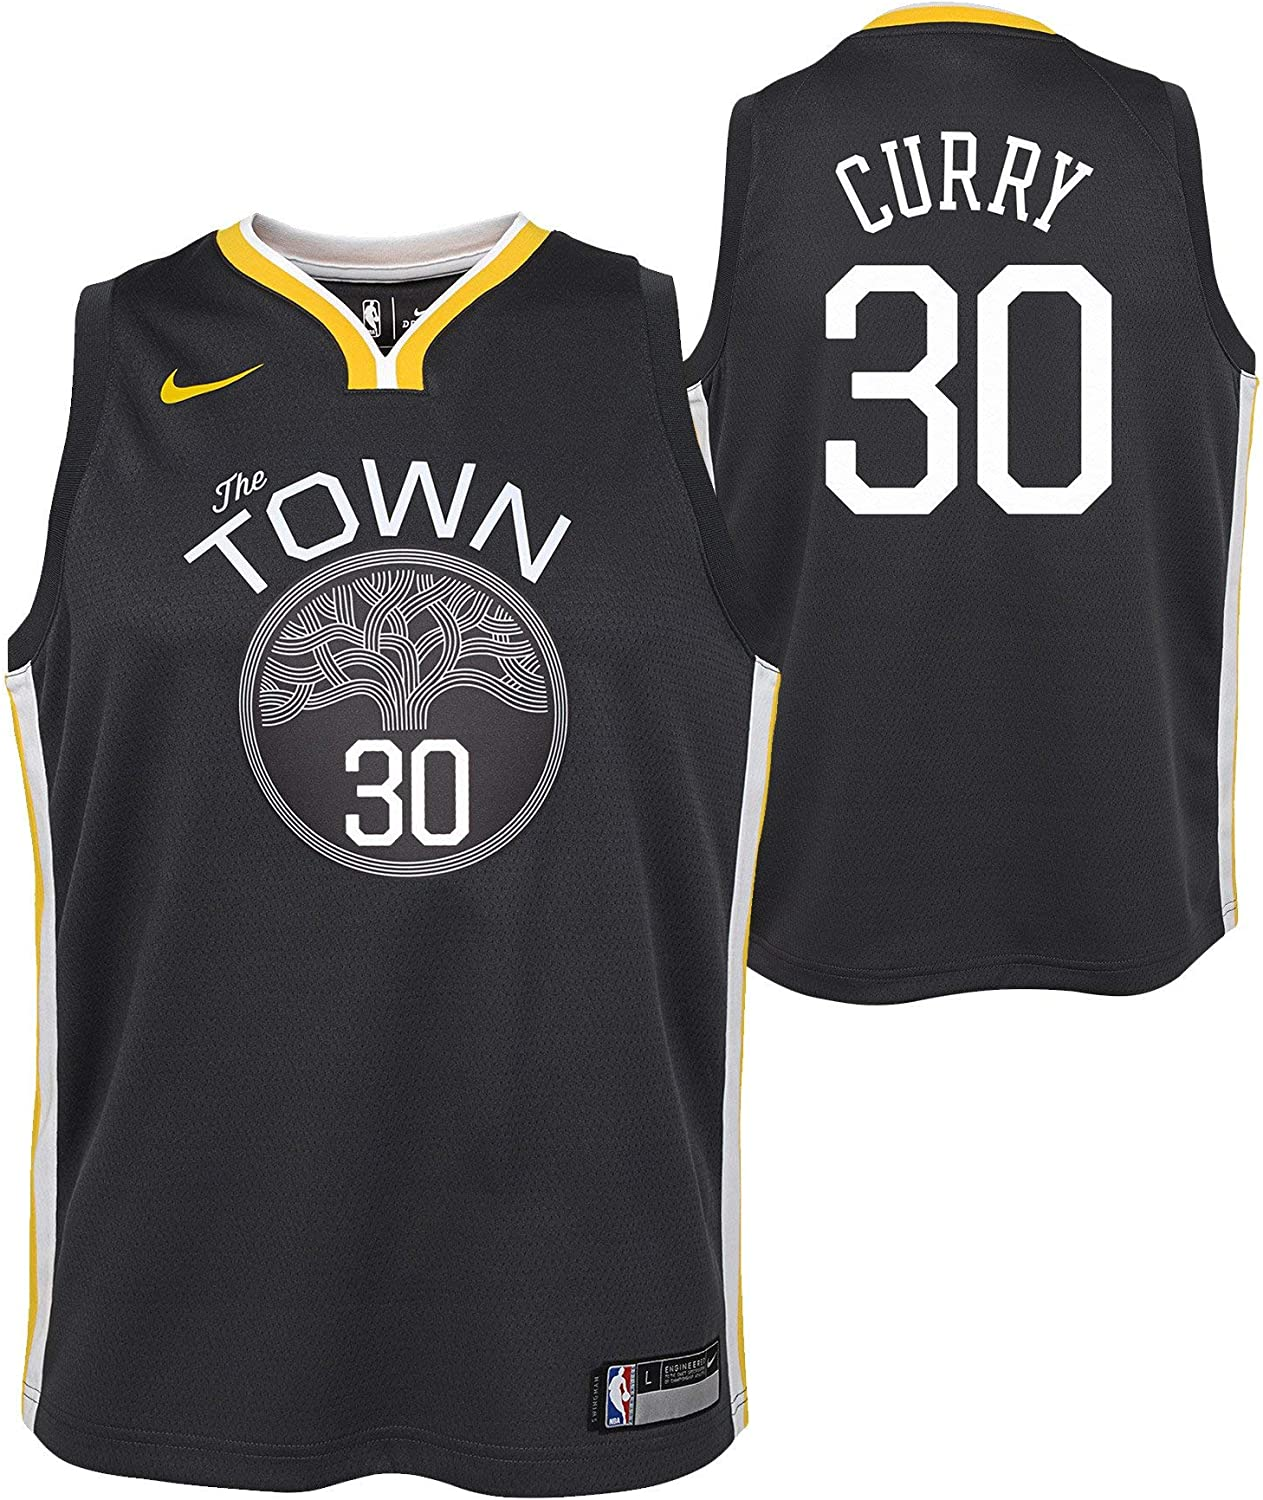 Nike Stephen Curry Golden State Warriors NBA Youth 8-20 The Town Statement Edition Black Alternate Swingman Jersey